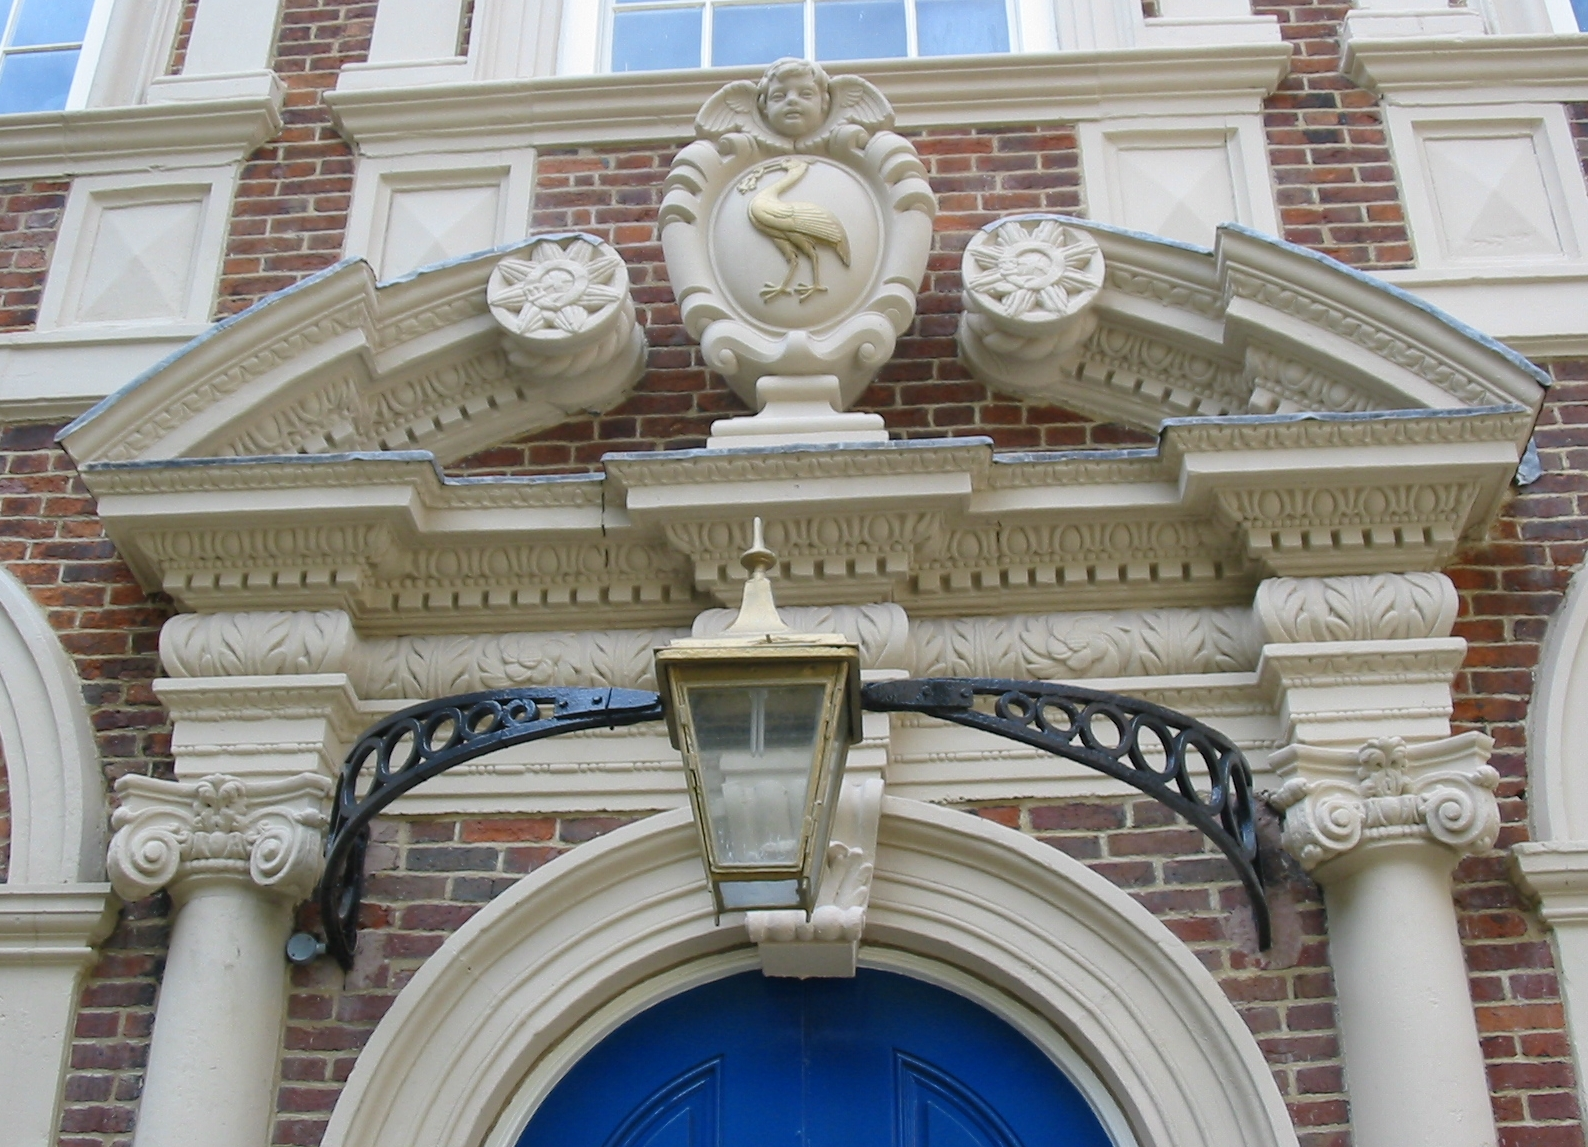 File:Liverpool Bluecoat Door Pediment 2